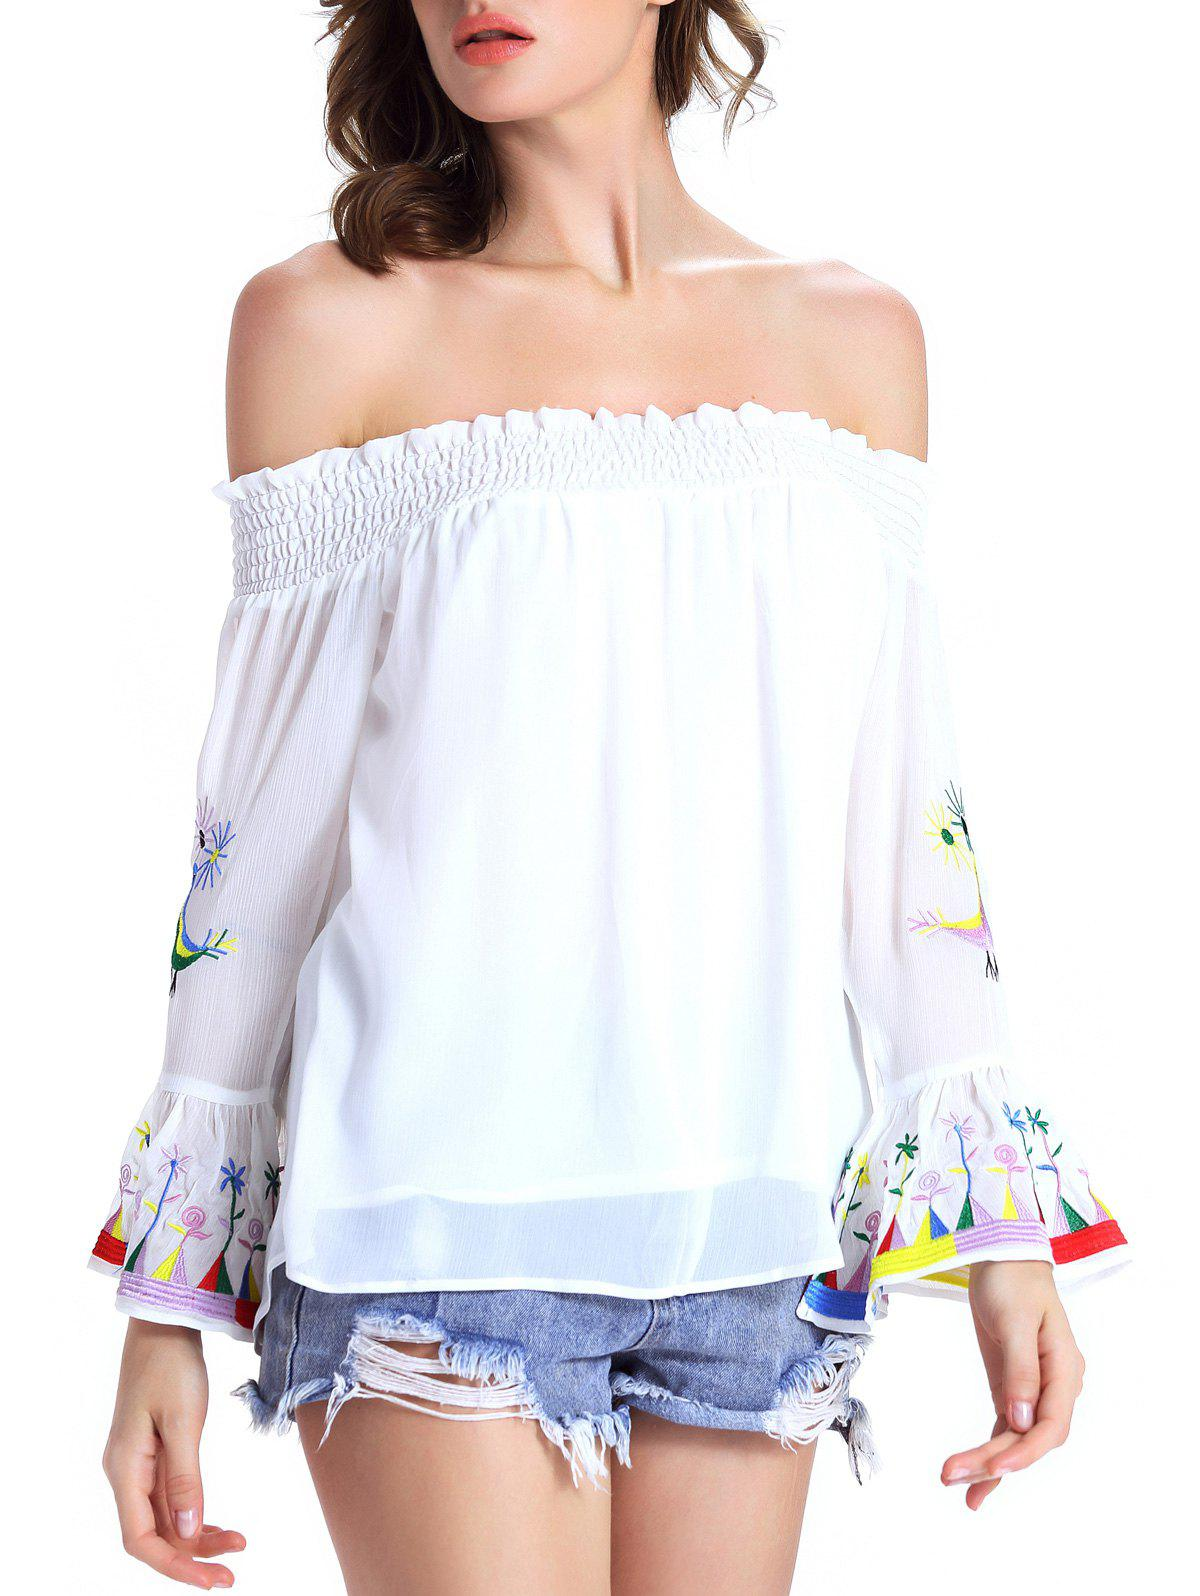 Stylish Ethnic Print Off The Shoulder Blouse For Women - WHITE XL